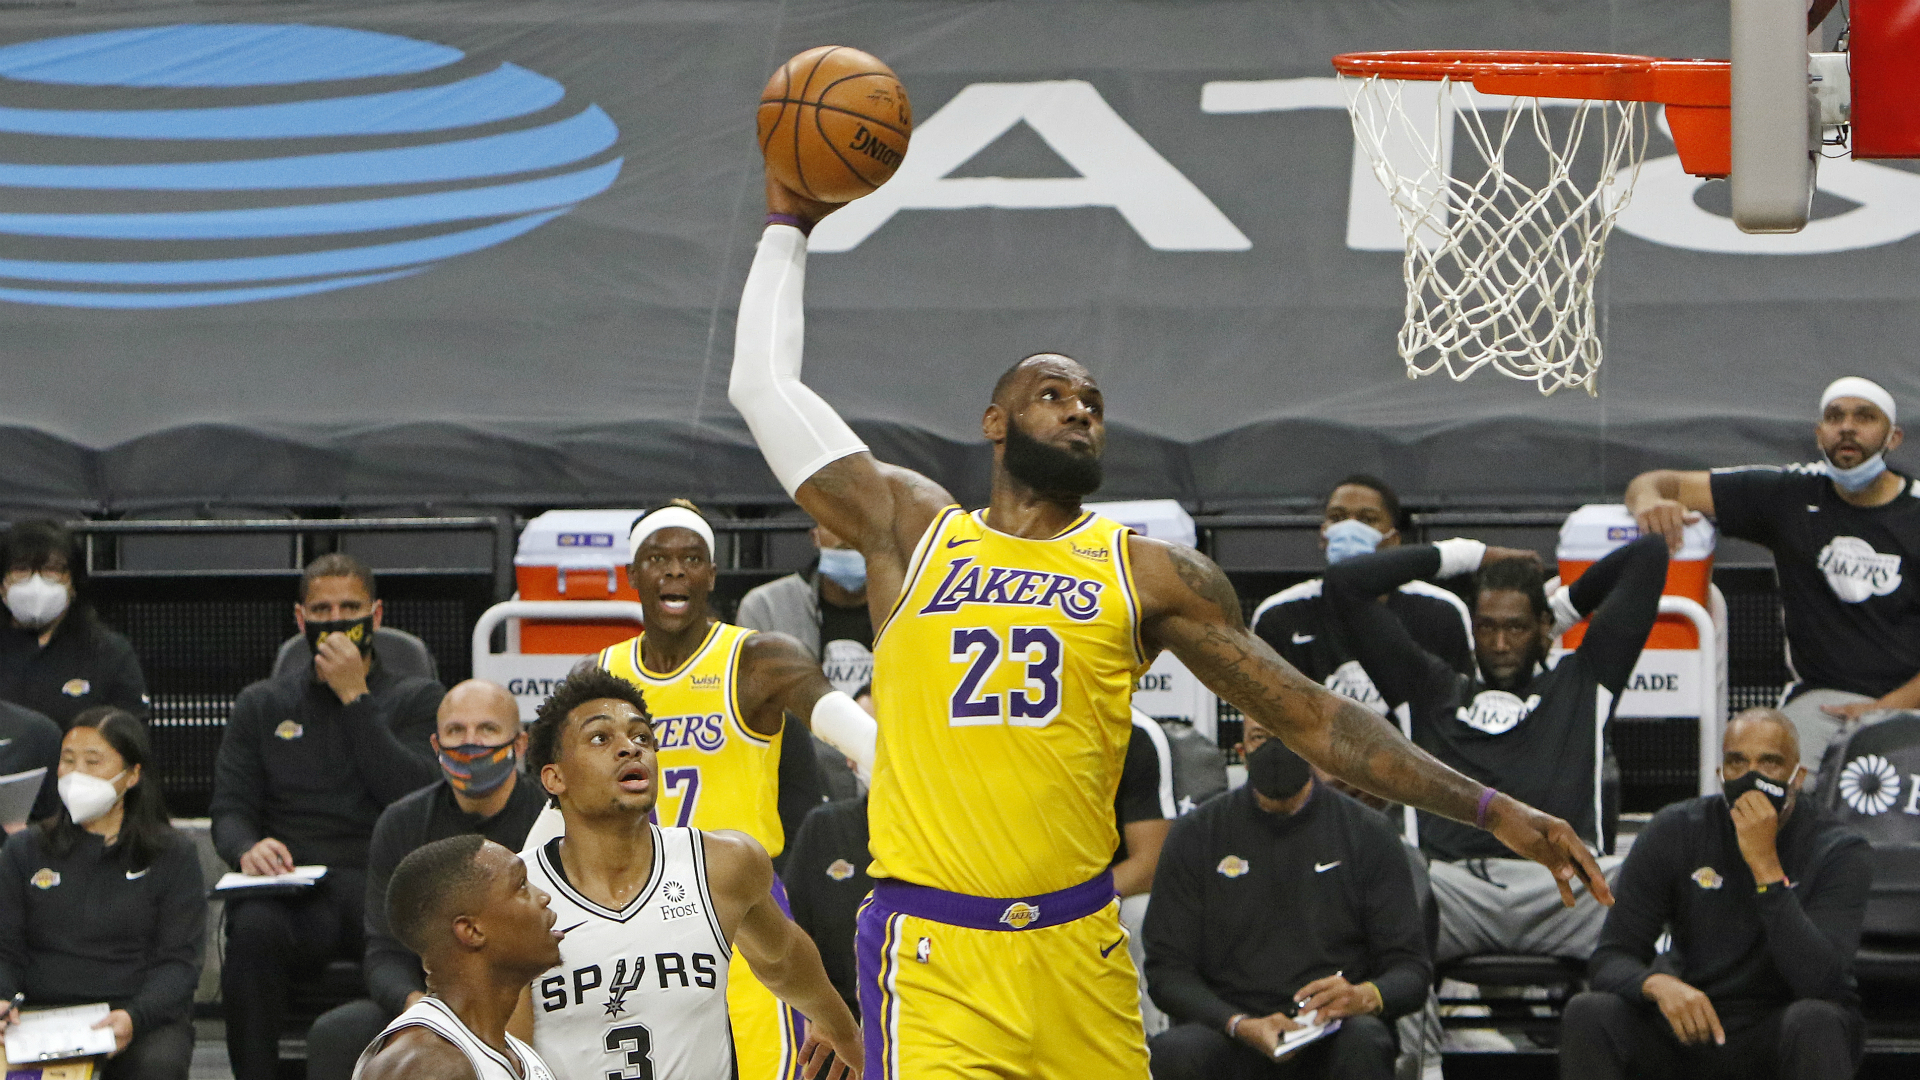 Birthday boy LeBron extends record streak on landmark day in NBA, Brown follows in Bird's footsteps